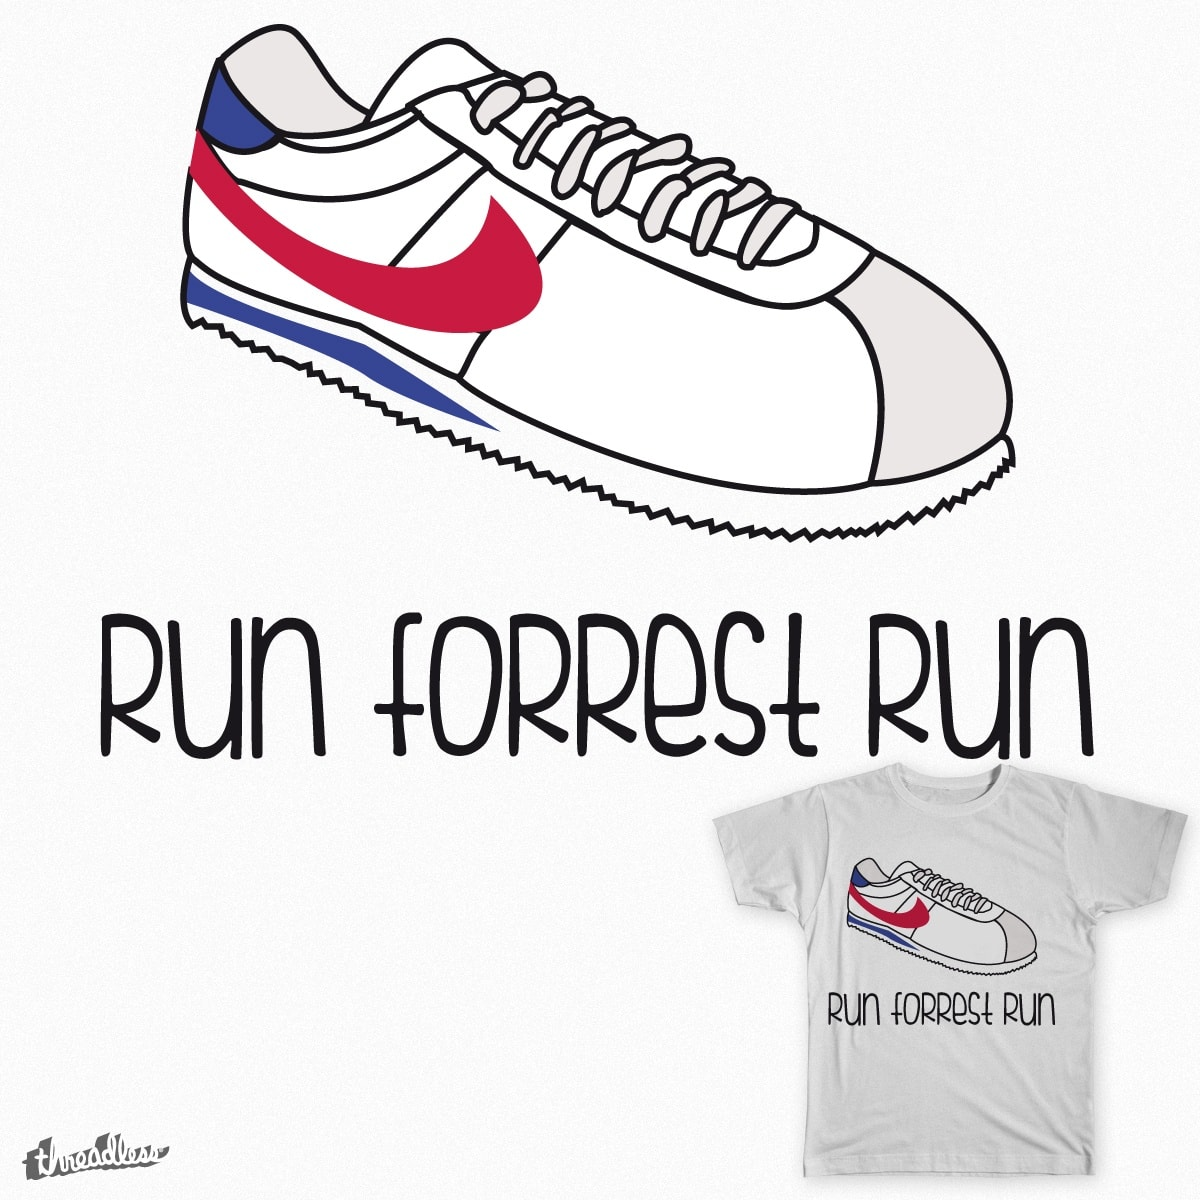 Run forrest run by andresbruno on Threadless